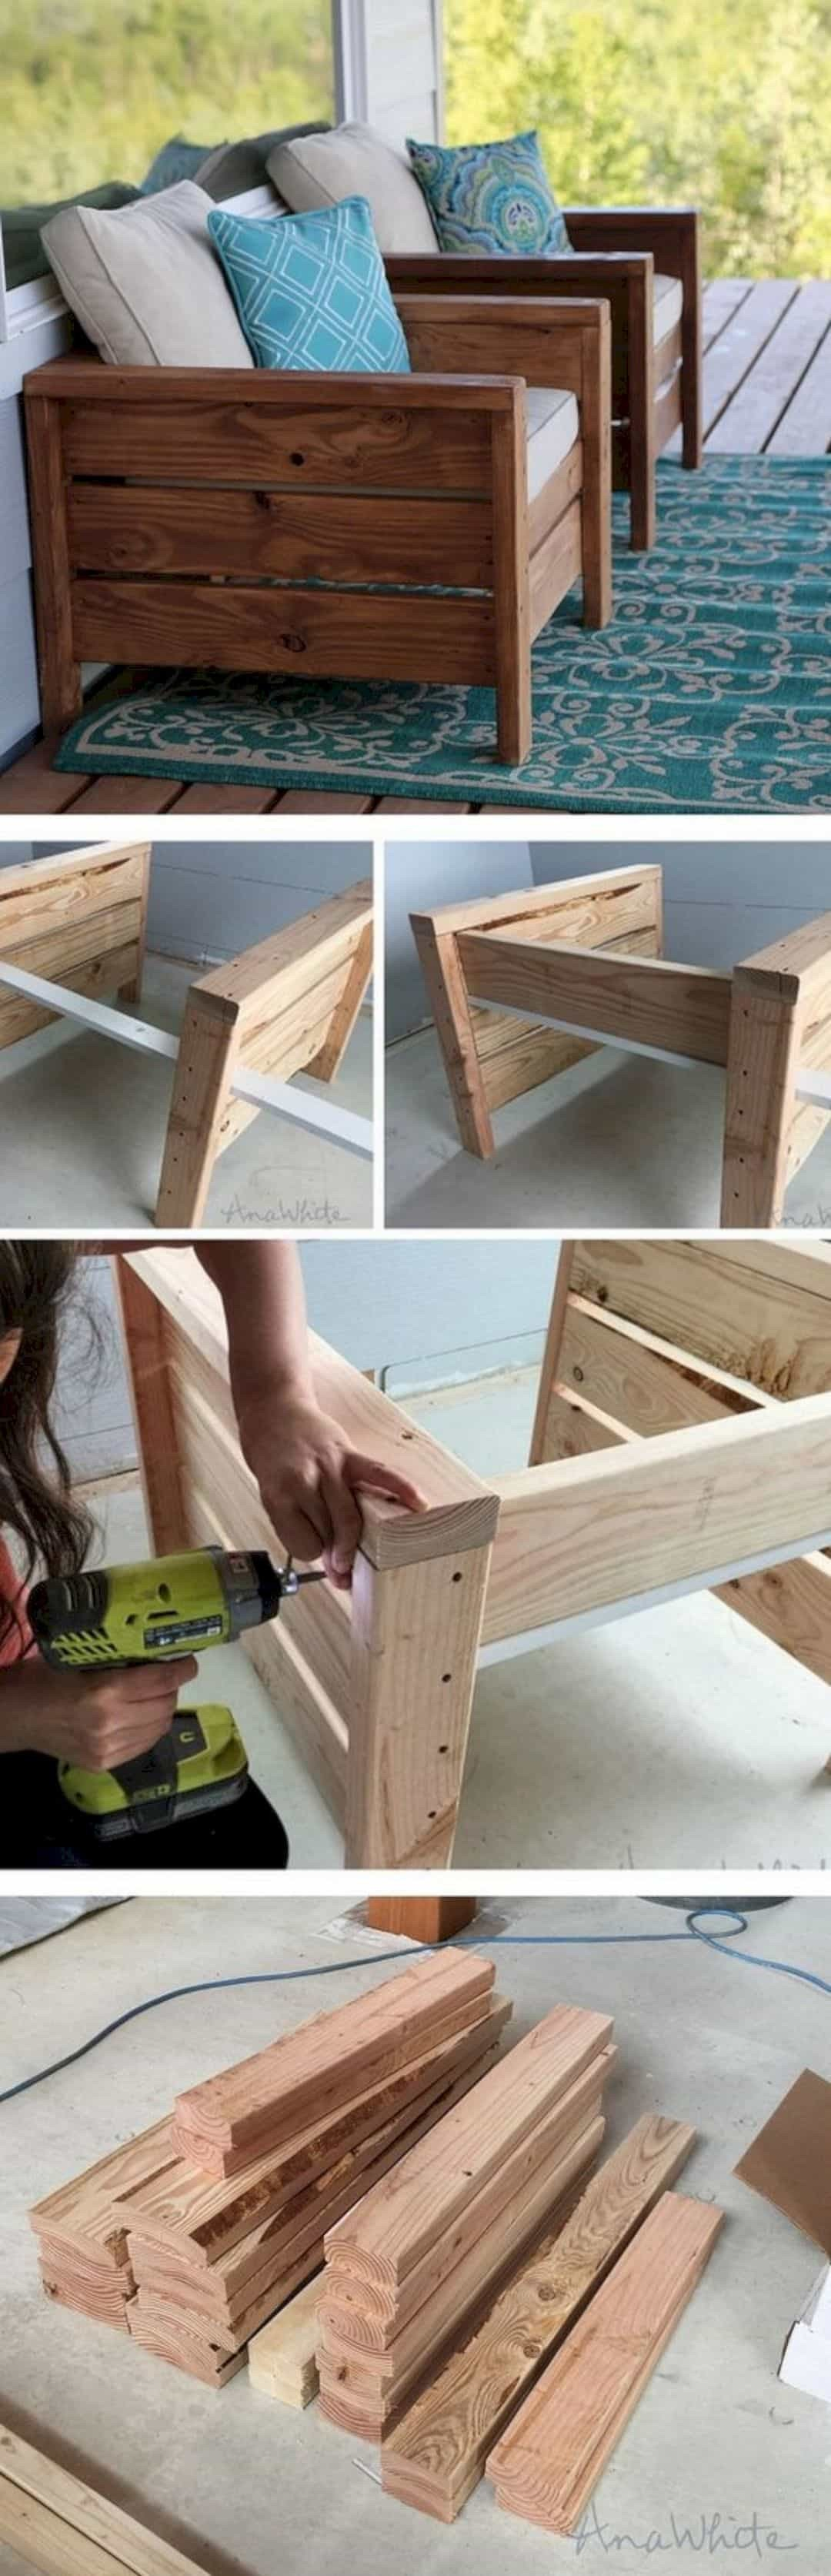 Home Decor On A Budget Luxury 17 Coolest Diy Home Decor On A Bud